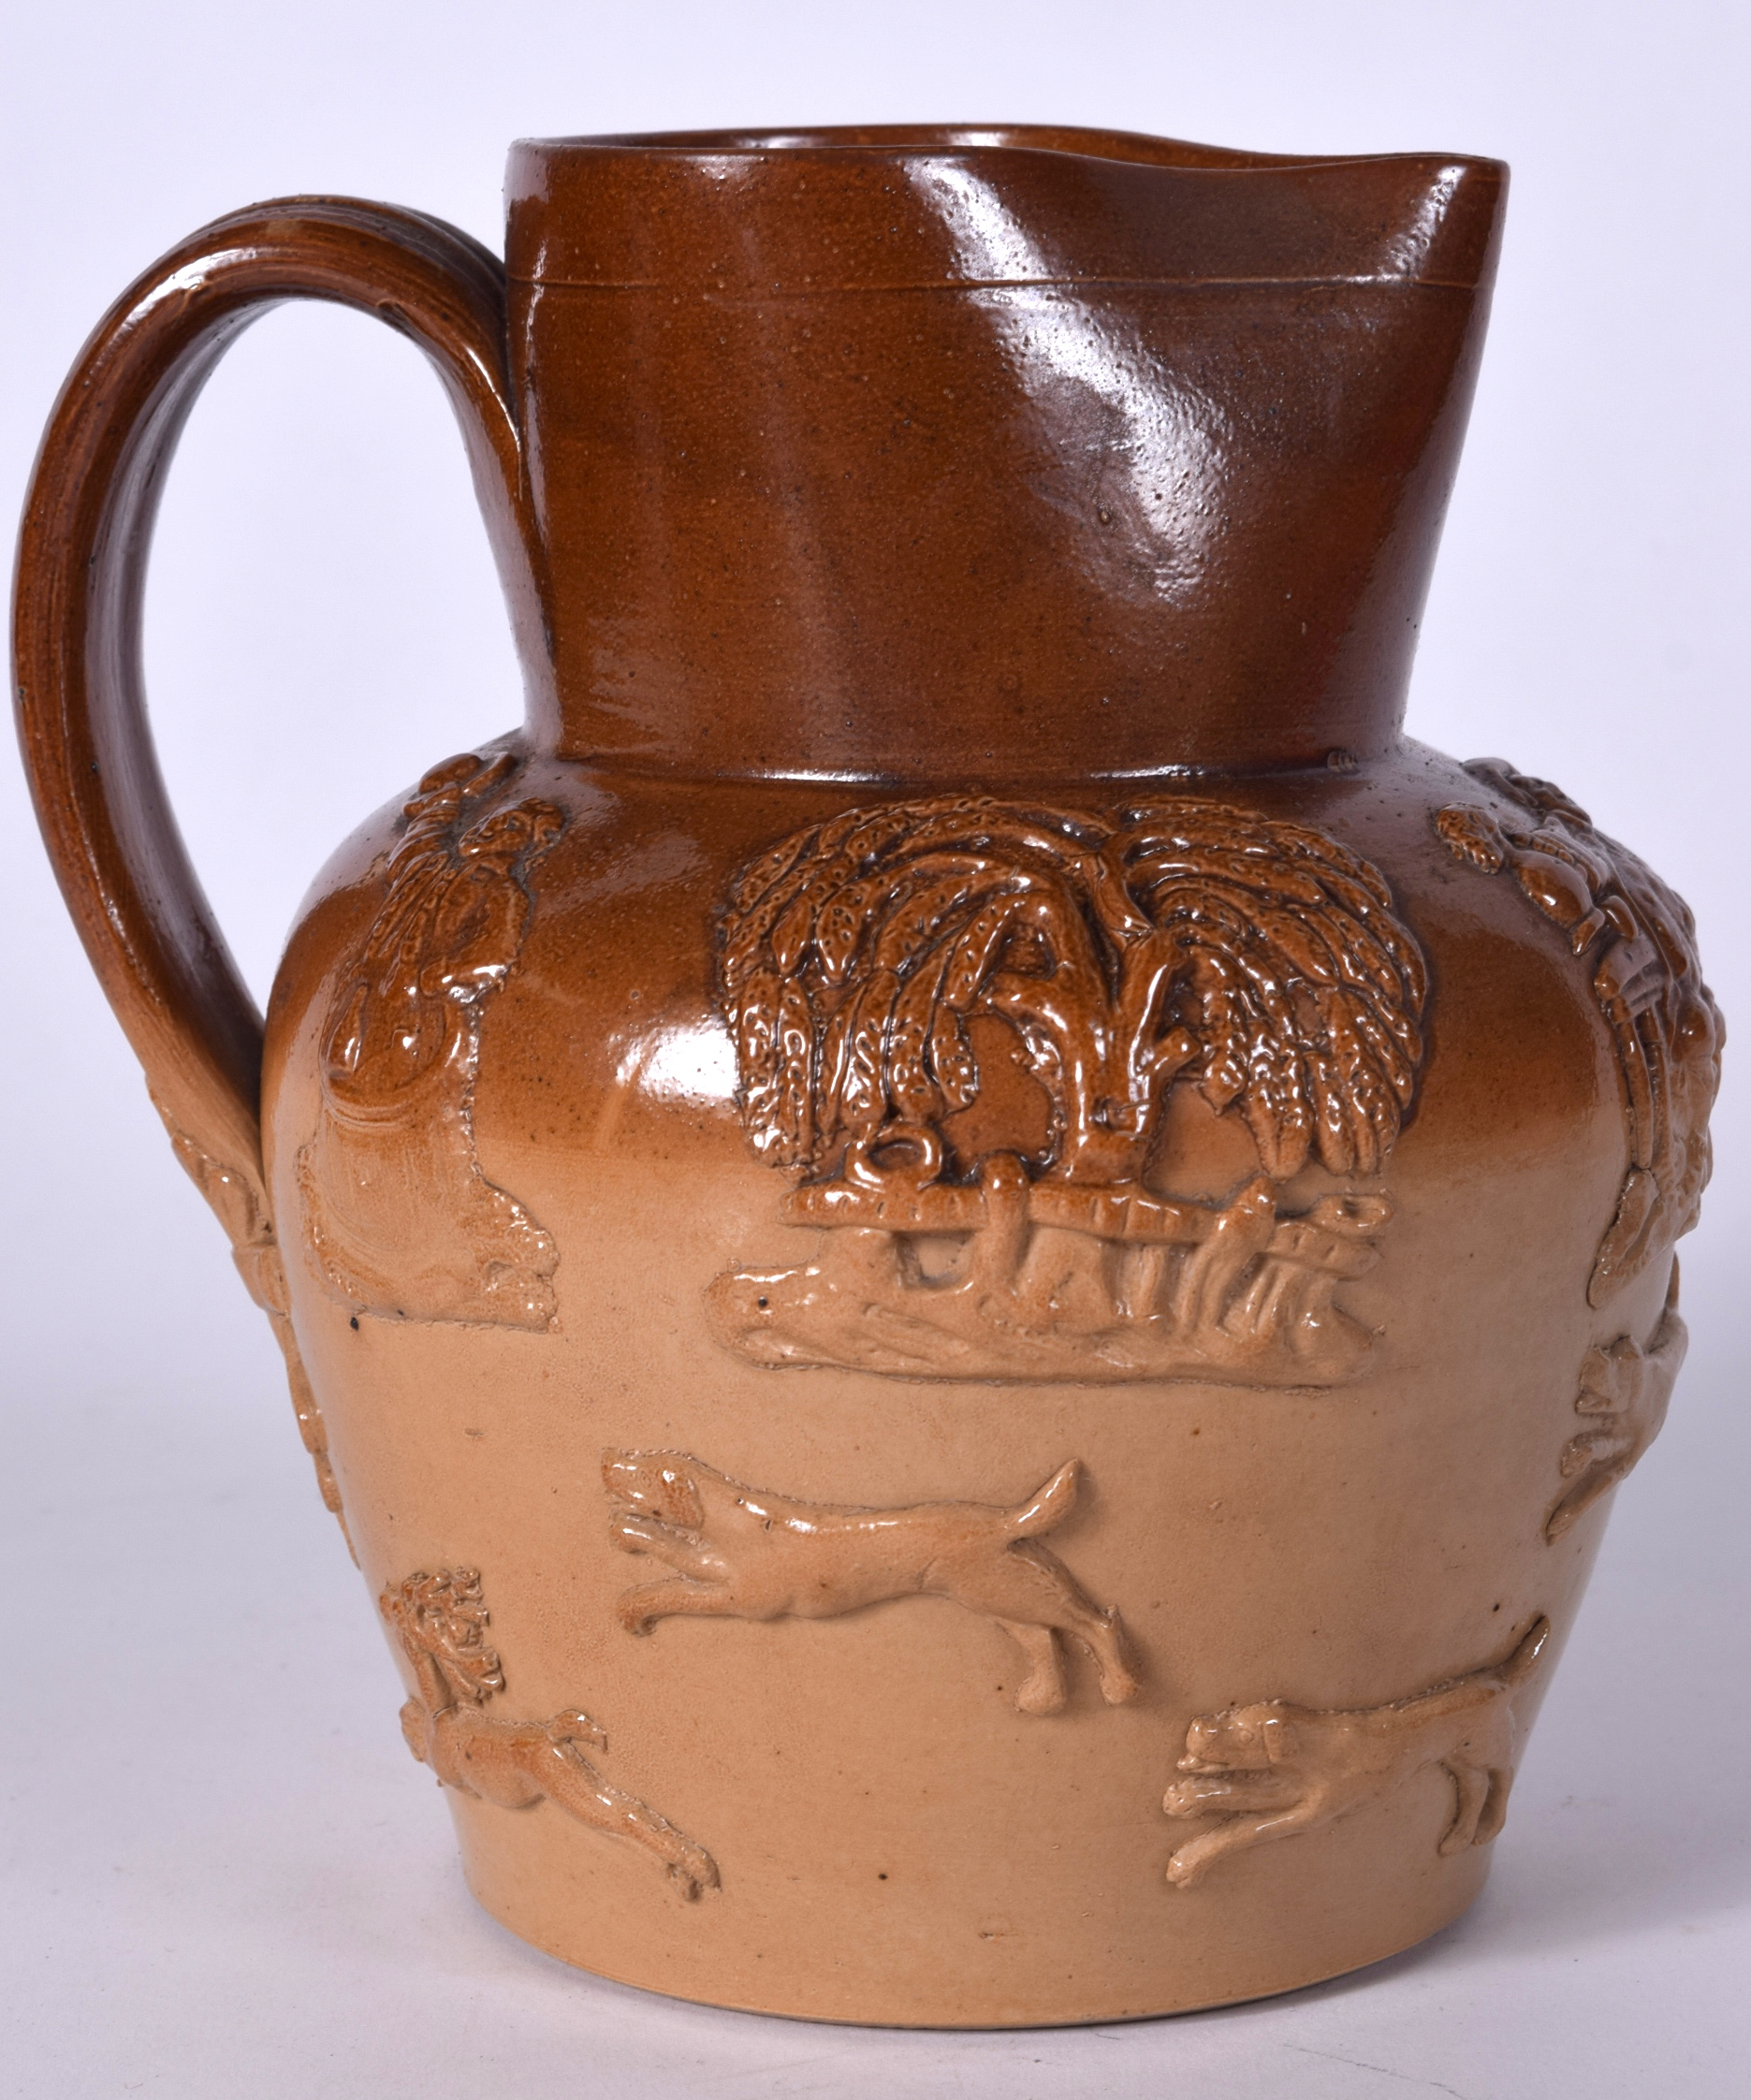 Lot 2497 - A LATE 19TH CENTURY STONEWARE FOX HUNTING JUG, decorated with hunting scenes. 17.5 cm x 17 cm.